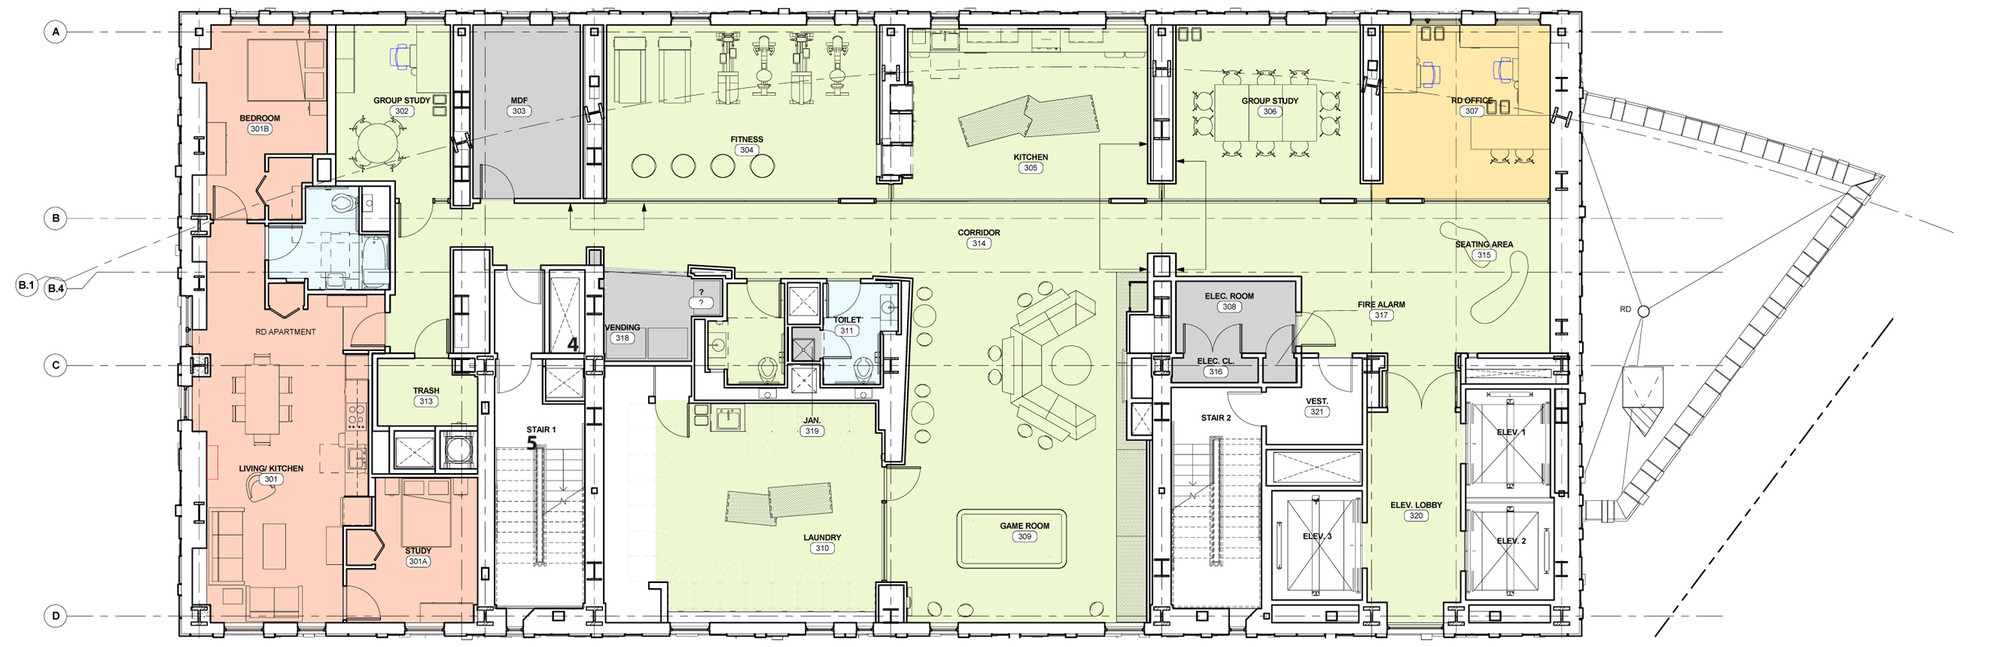 Gallery of massachusetts college of art and design s for Drawing hall design